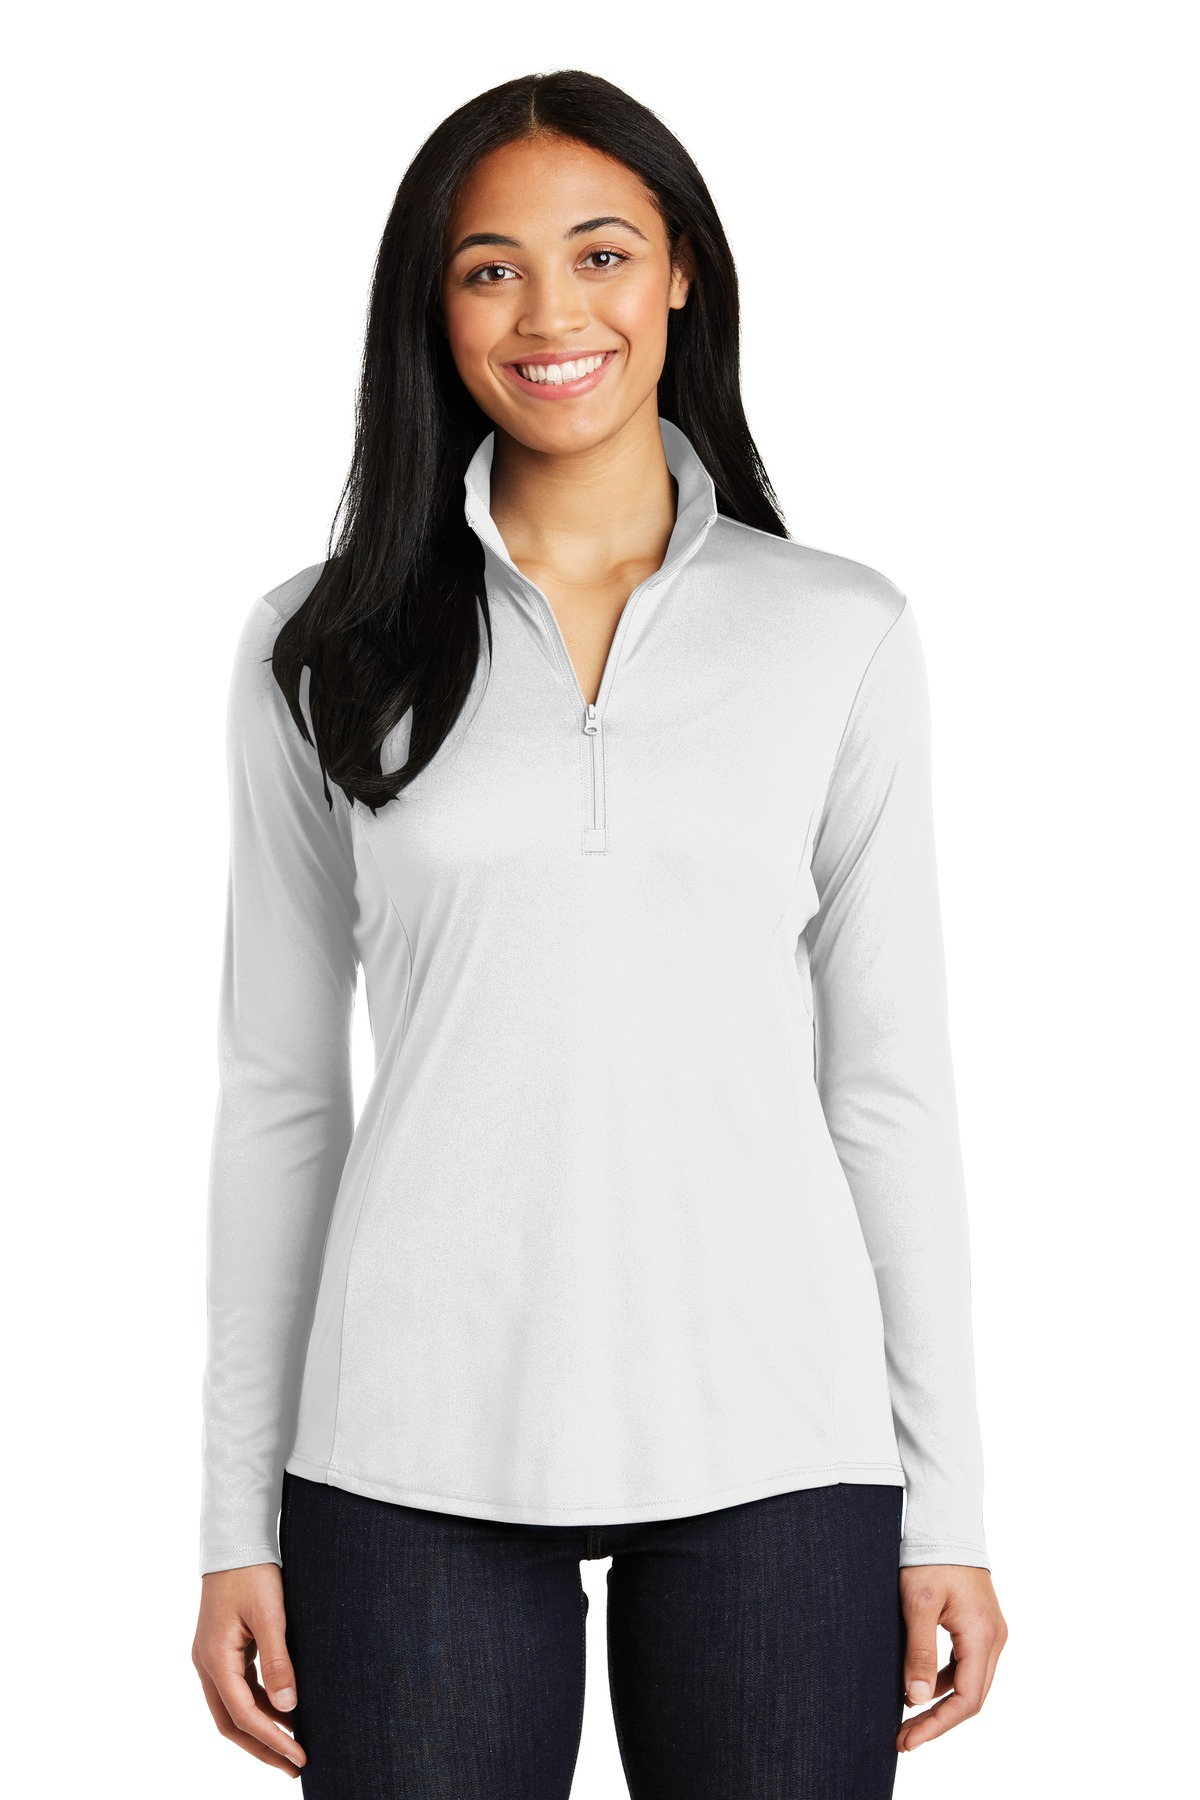 Sport-Tek ®  Ladies PosiCharge ®  Competitor ™  1/4-Zip Pullover. LST357 - White